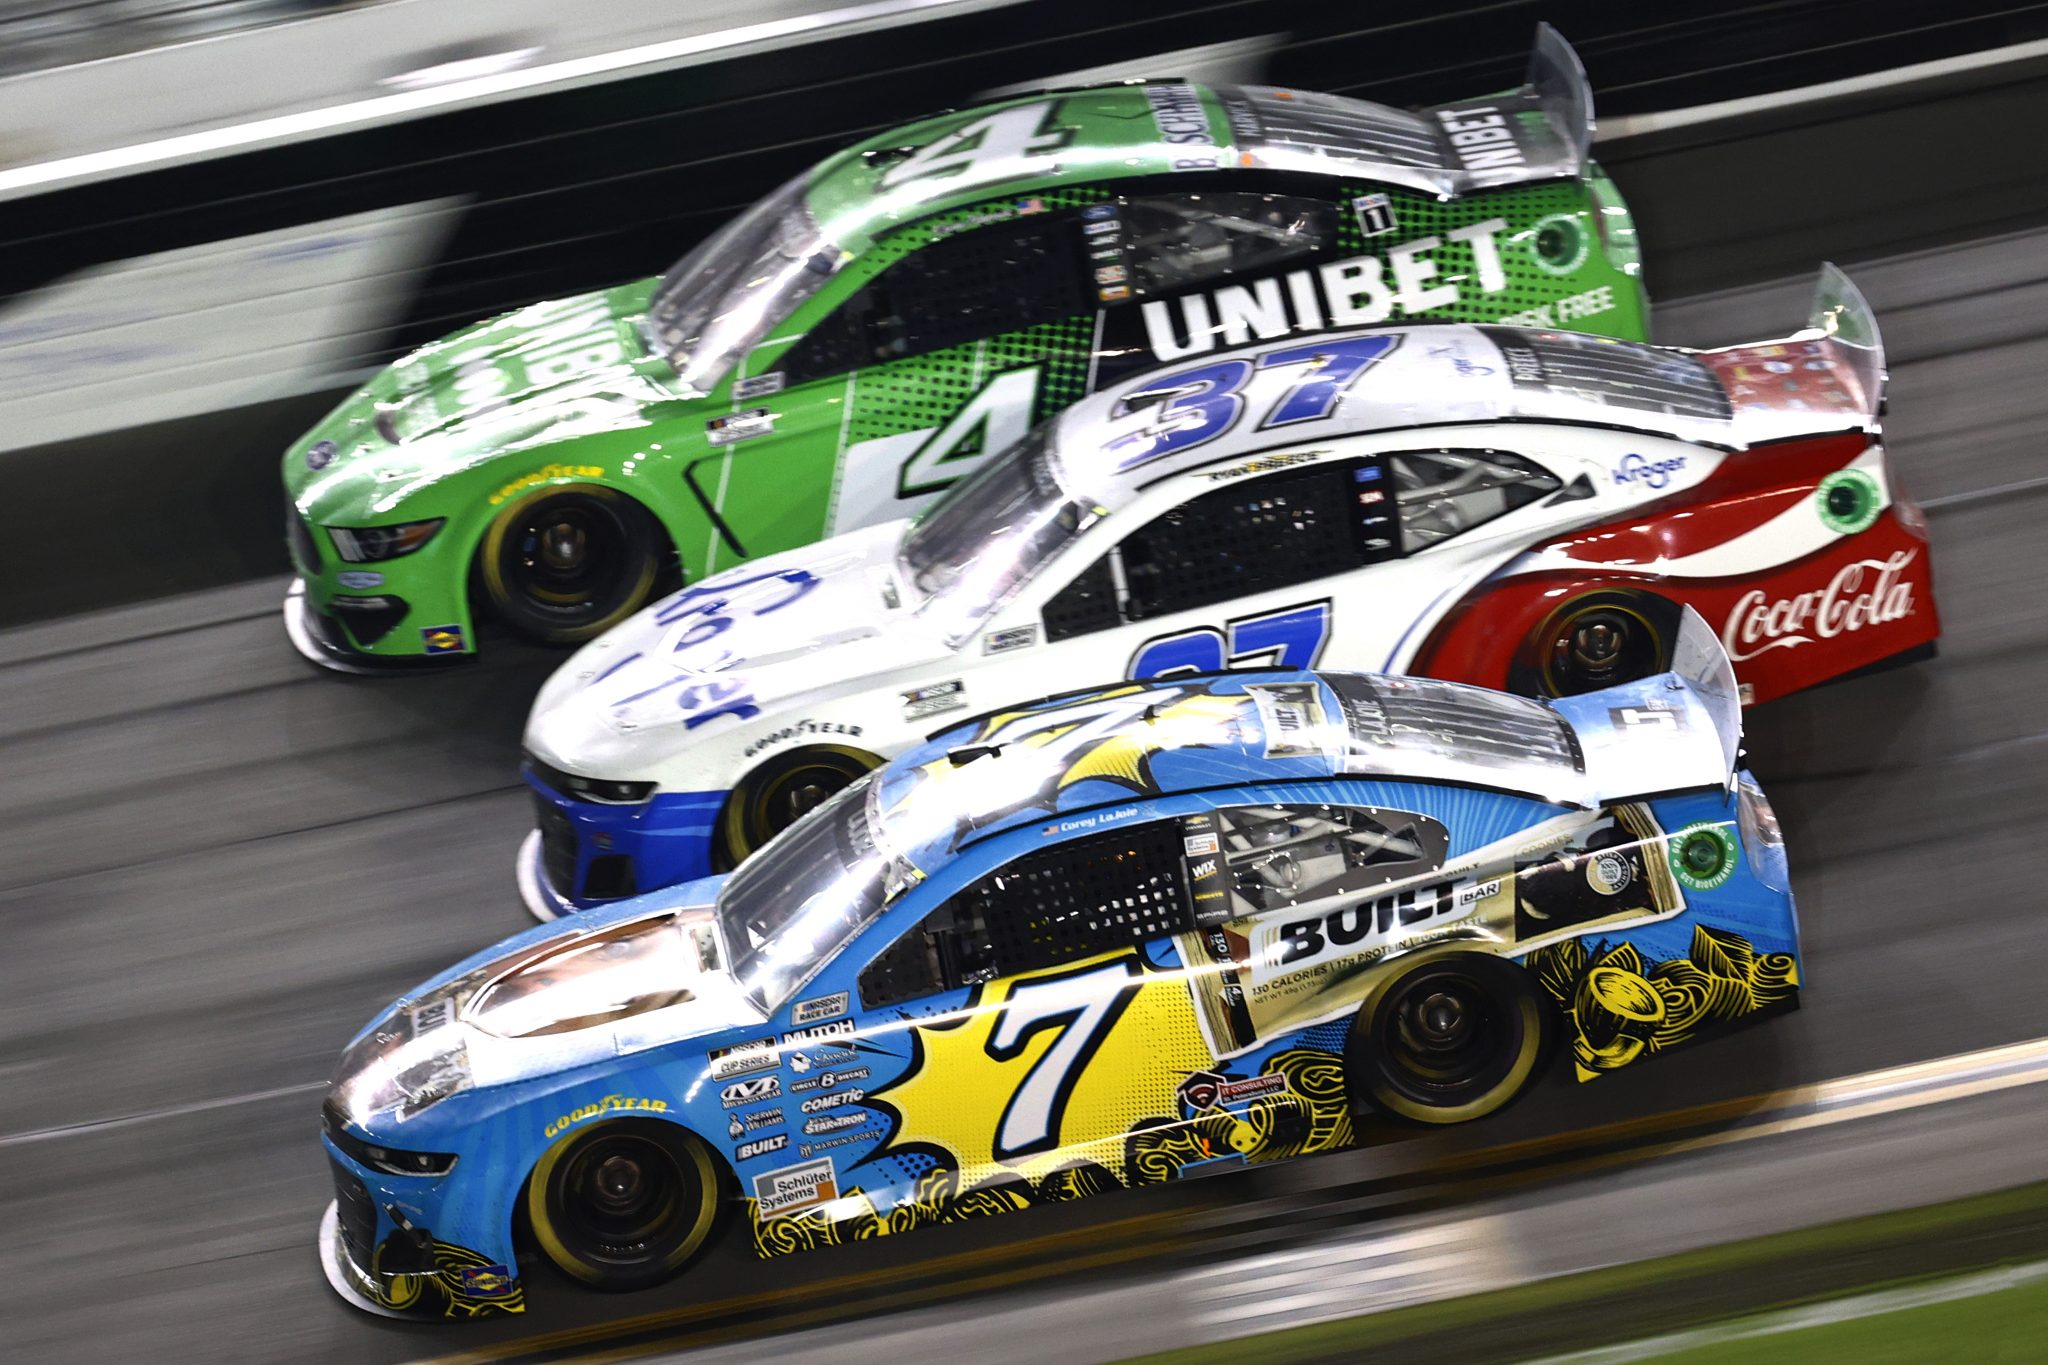 DAYTONA BEACH, FLORIDA - AUGUST 28: Corey LaJoie, driver of the #7 Built bar Chevrolet, Ryan Preece, driver of the #37 Kroger/Coca-Cola Chevrolet, and Kevin Harvick, driver of the #4 Unibet Ford, race during the NASCAR Cup Series Coke Zero Sugar 400 at Daytona International Speedway on August 28, 2021 in Daytona Beach, Florida. (Photo by Jared C. Tilton/Getty Images)   Getty Images